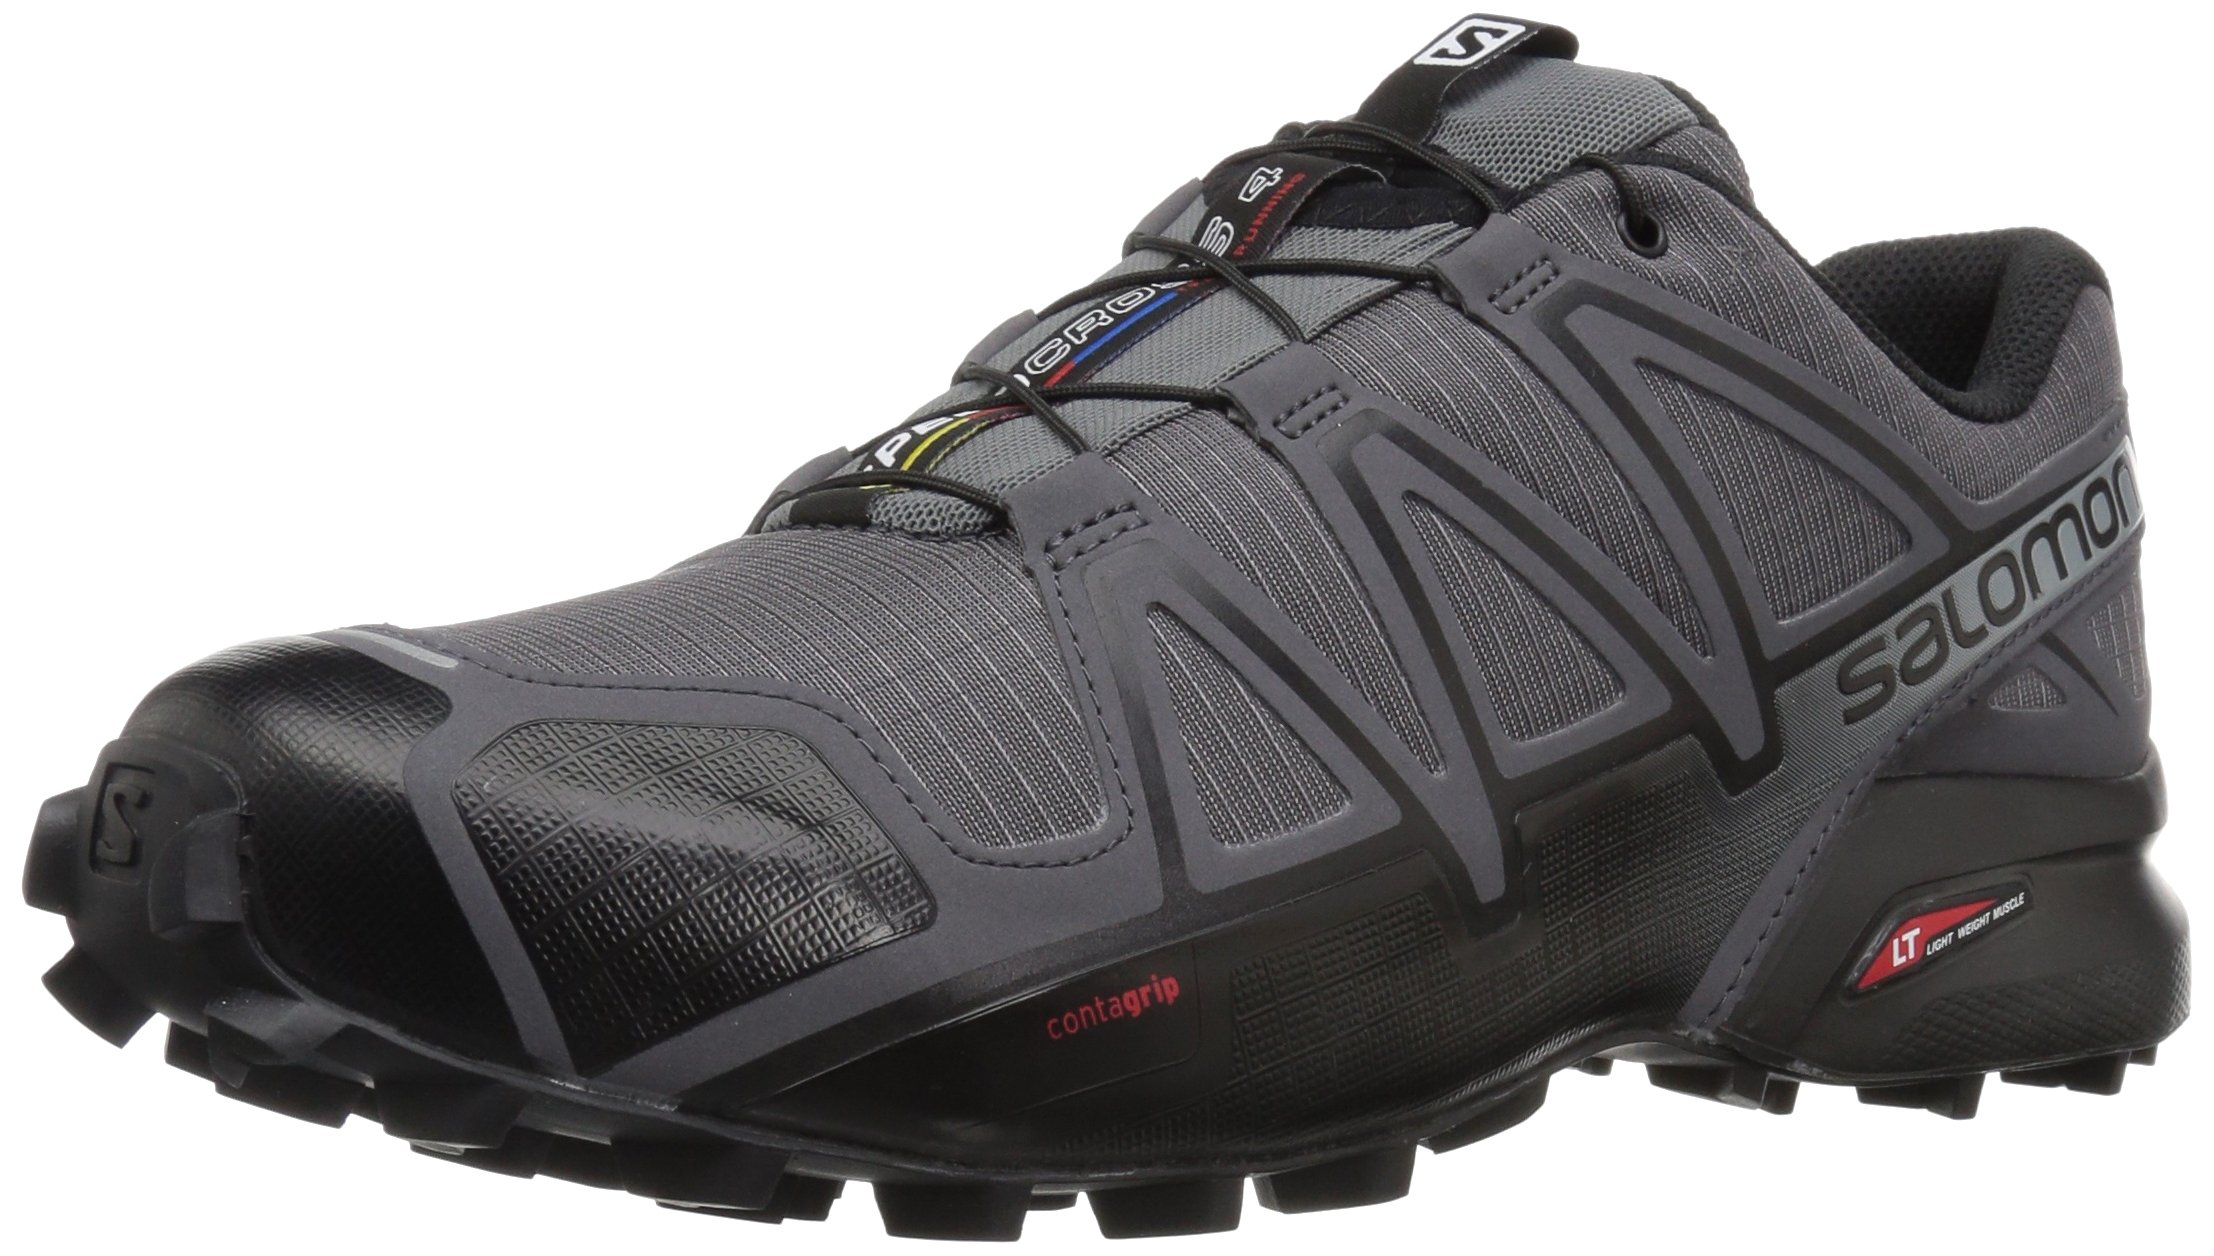 Salomon Men's Speedcross 4 Trail Running Shoe, Dark Cloud, 7 M US by Salomon (Image #1)